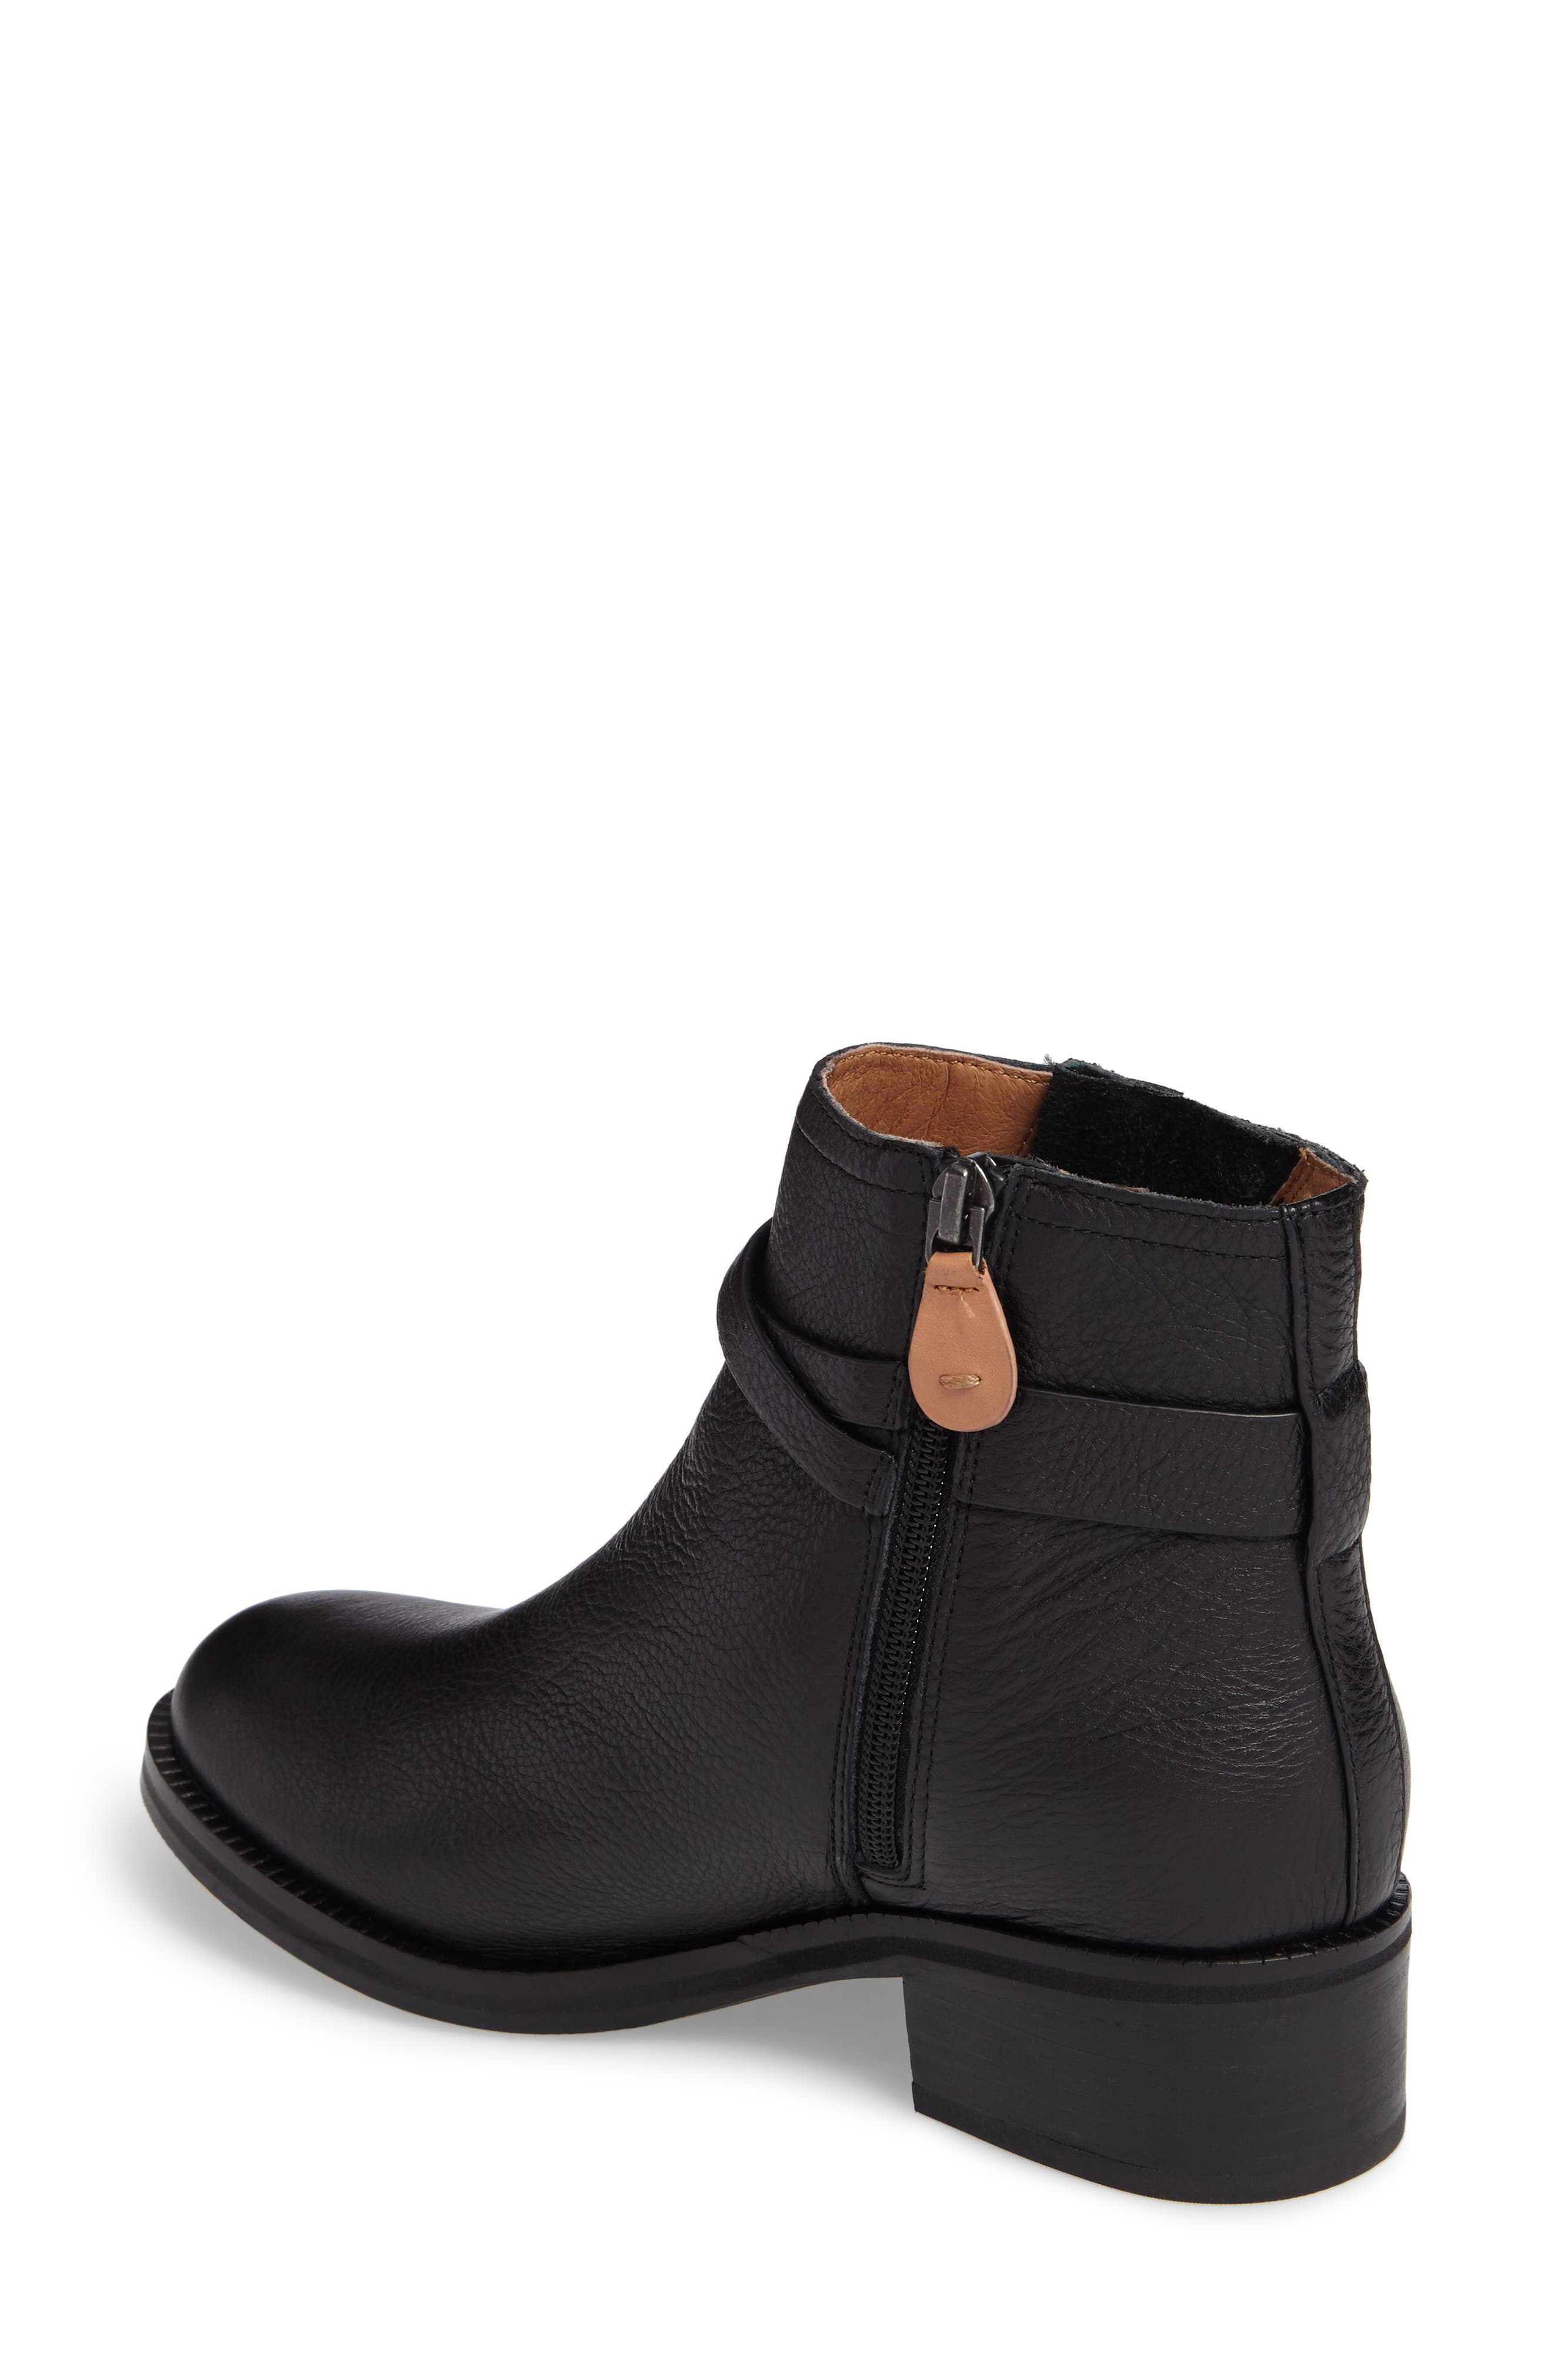 GENTLE SOULS BY KENNETH COLE, Percy Bootie, Alternate thumbnail 2, color, BLACK LEATHER